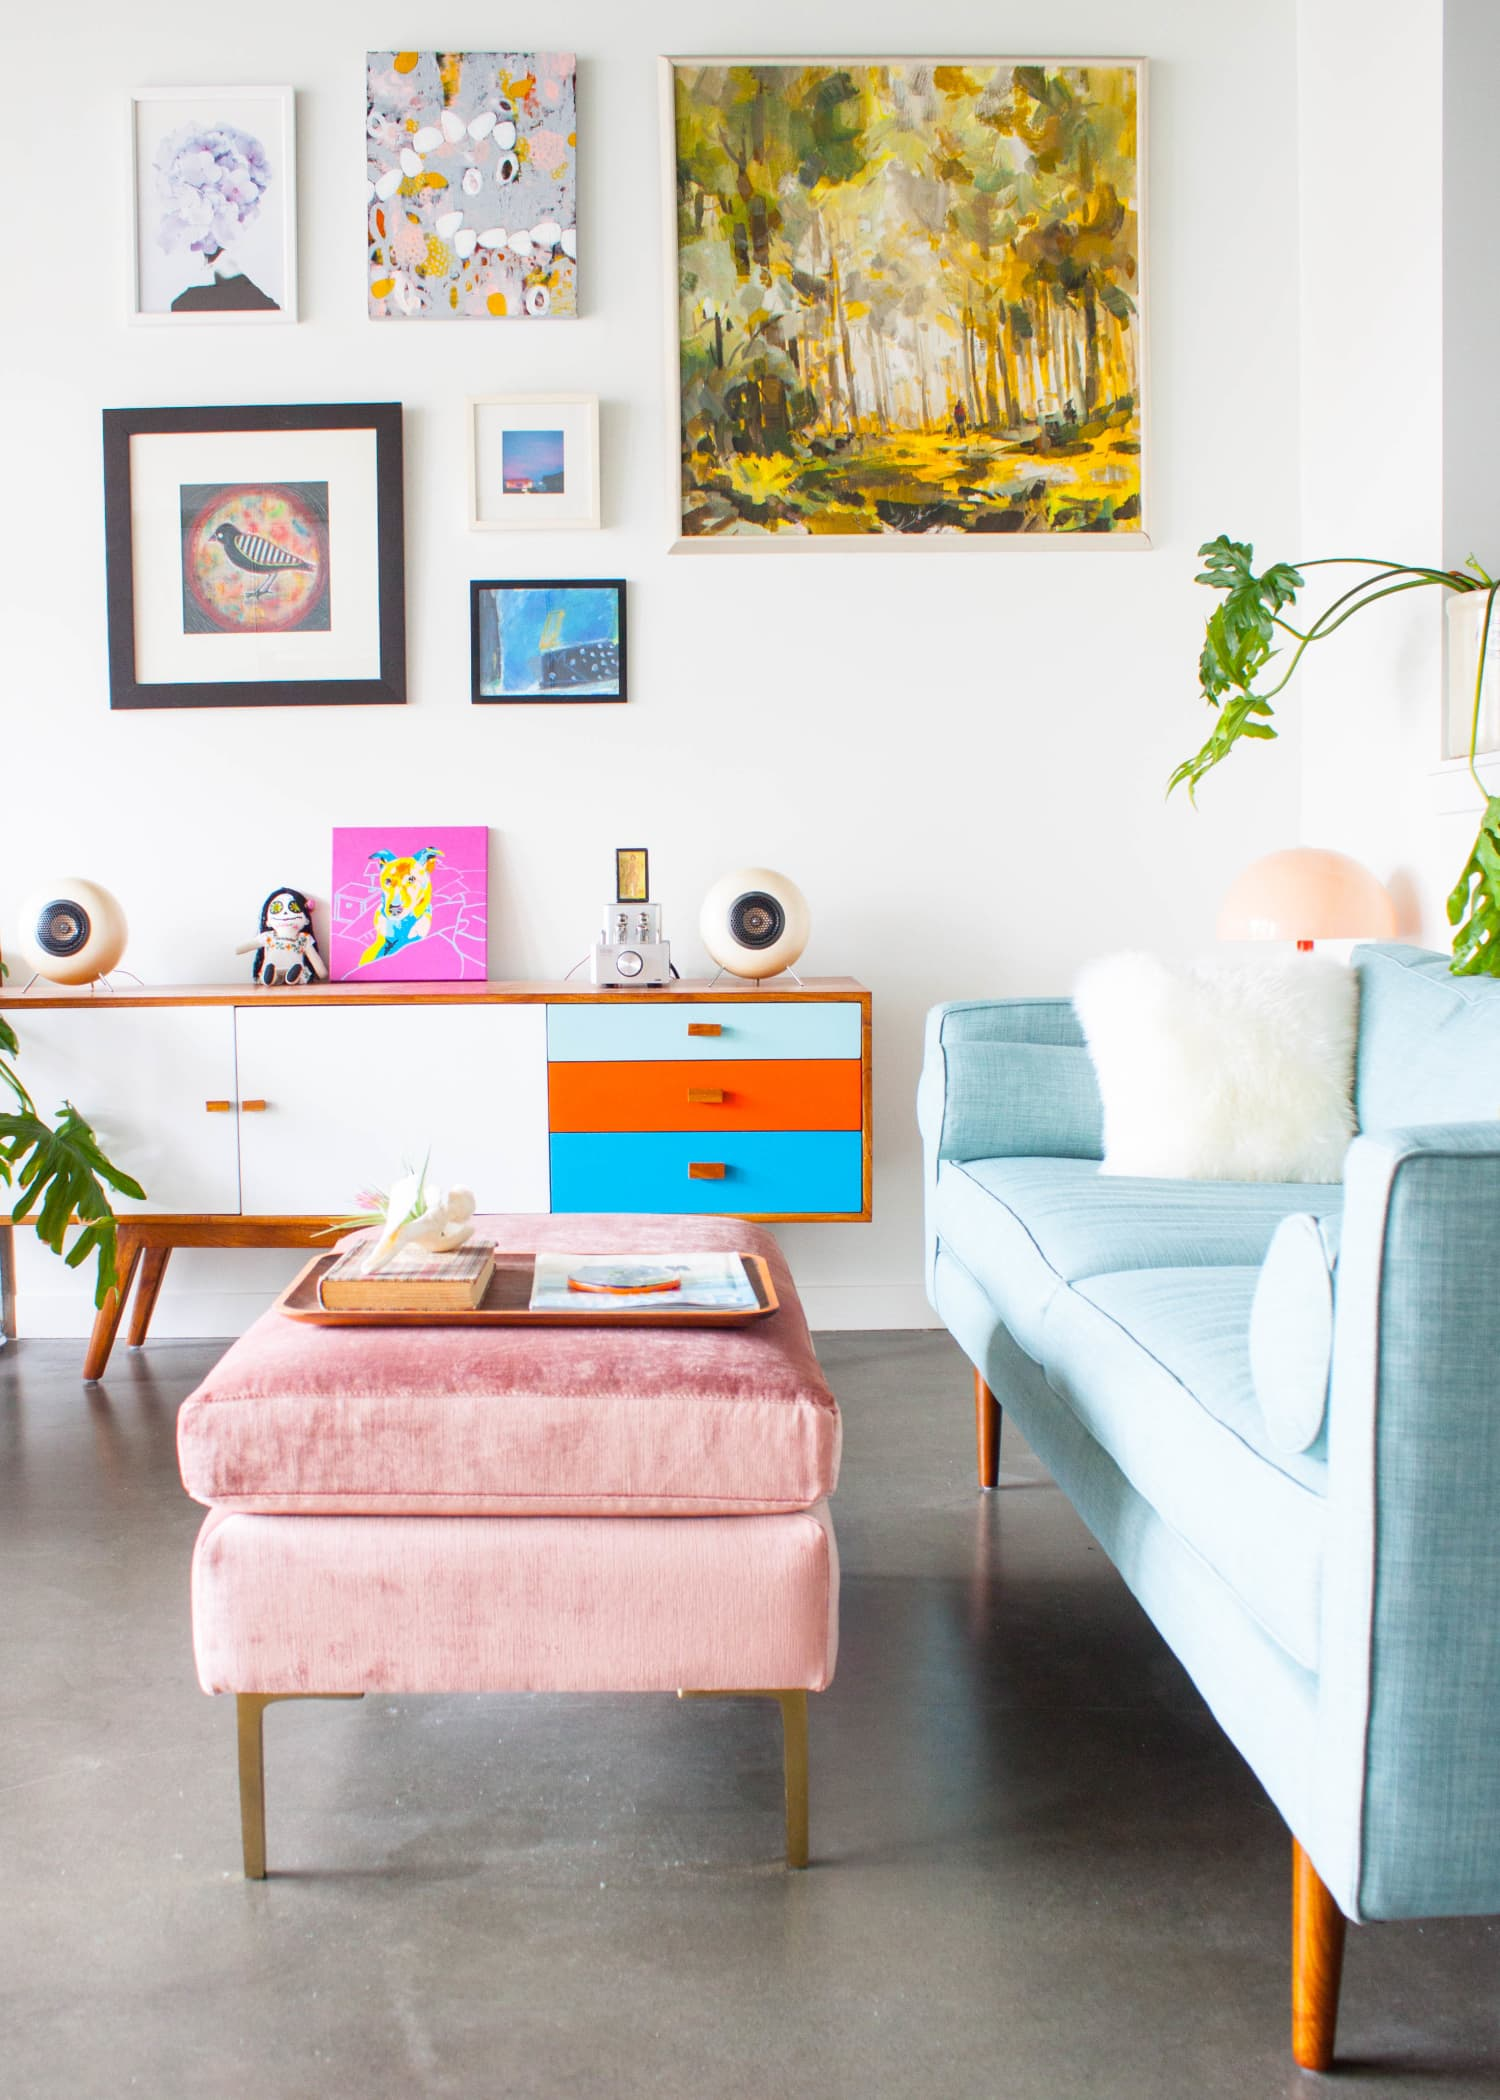 Decorating Small Open Floor Plan Living Room And Kitchen: The Best Coffee Tables For Small Spaces